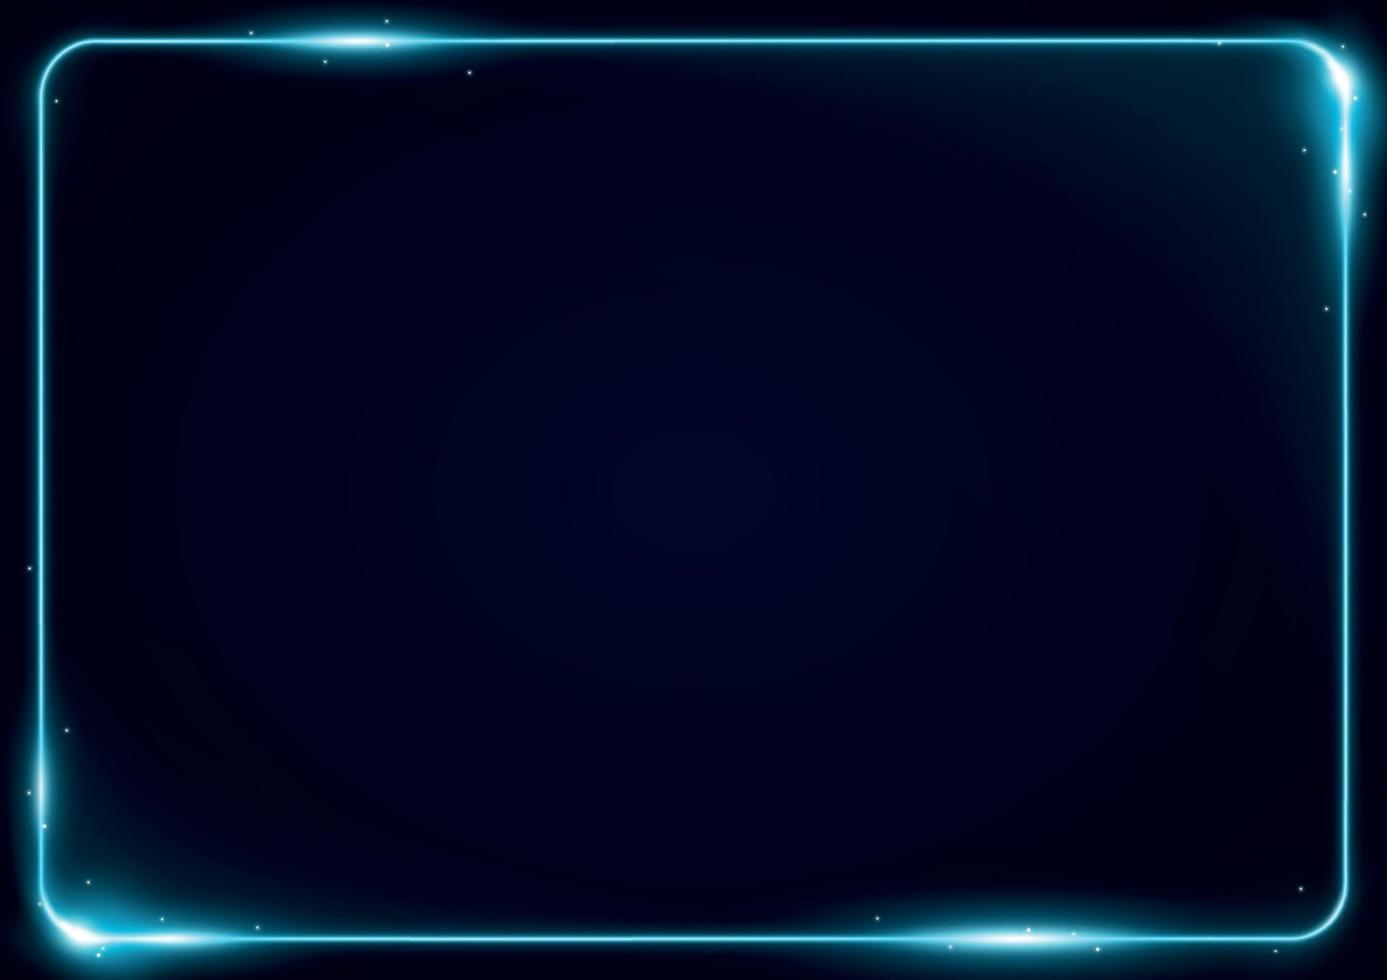 Glowing Neon Border Frame Template vector